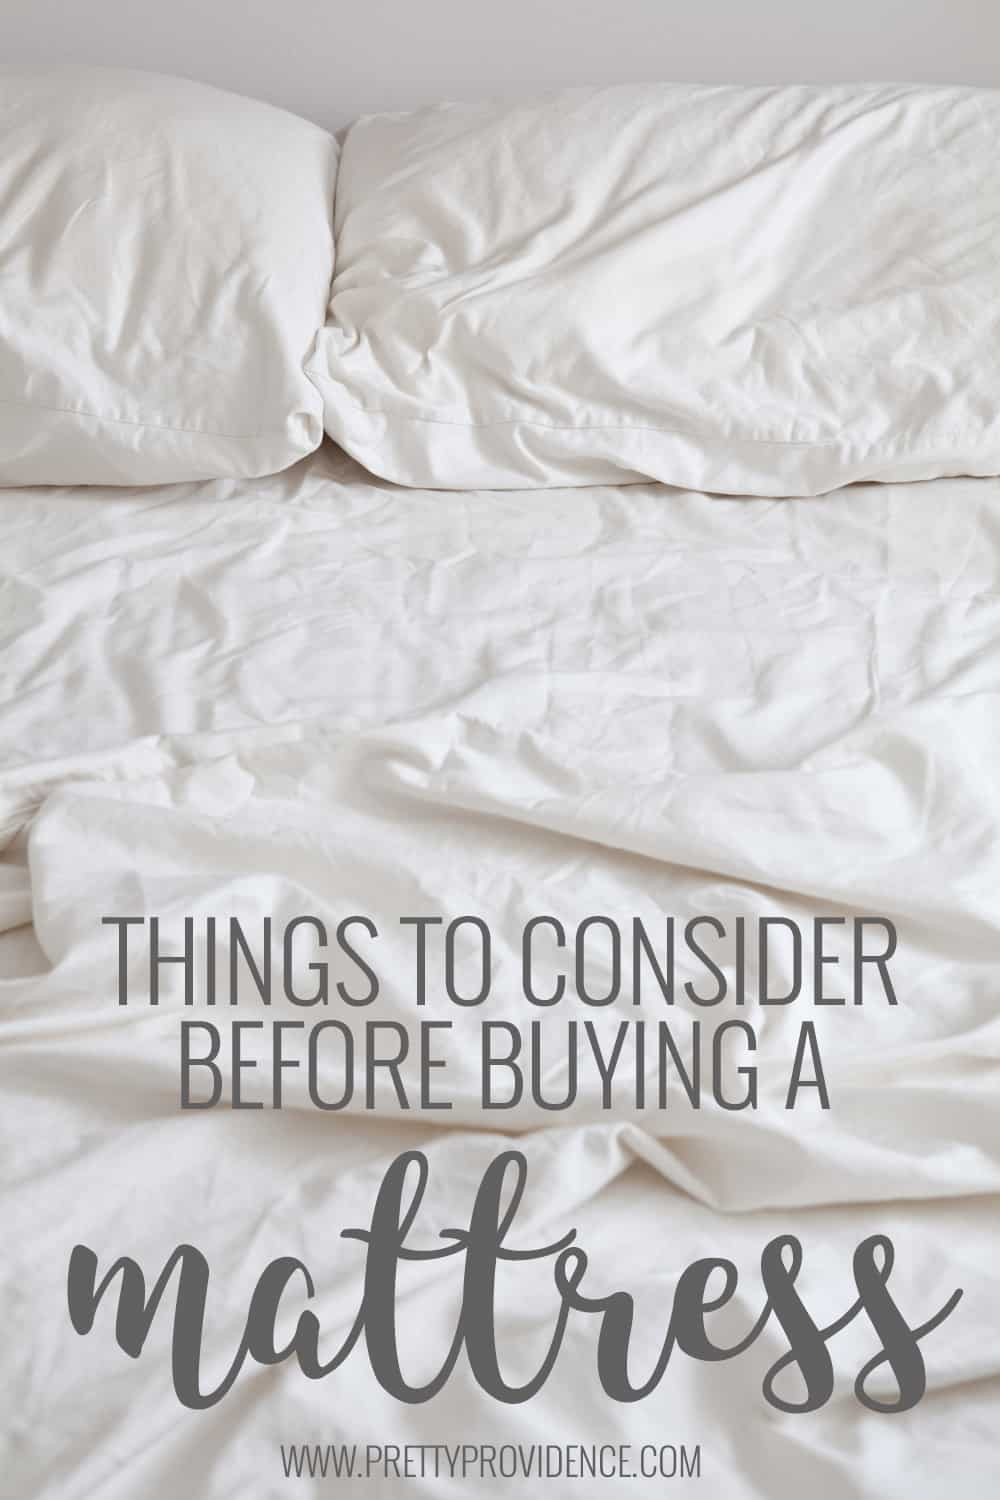 Important things to consider before buying a mattress! So many different things factor in to such a big purchase! Make sure you've considered all of them!